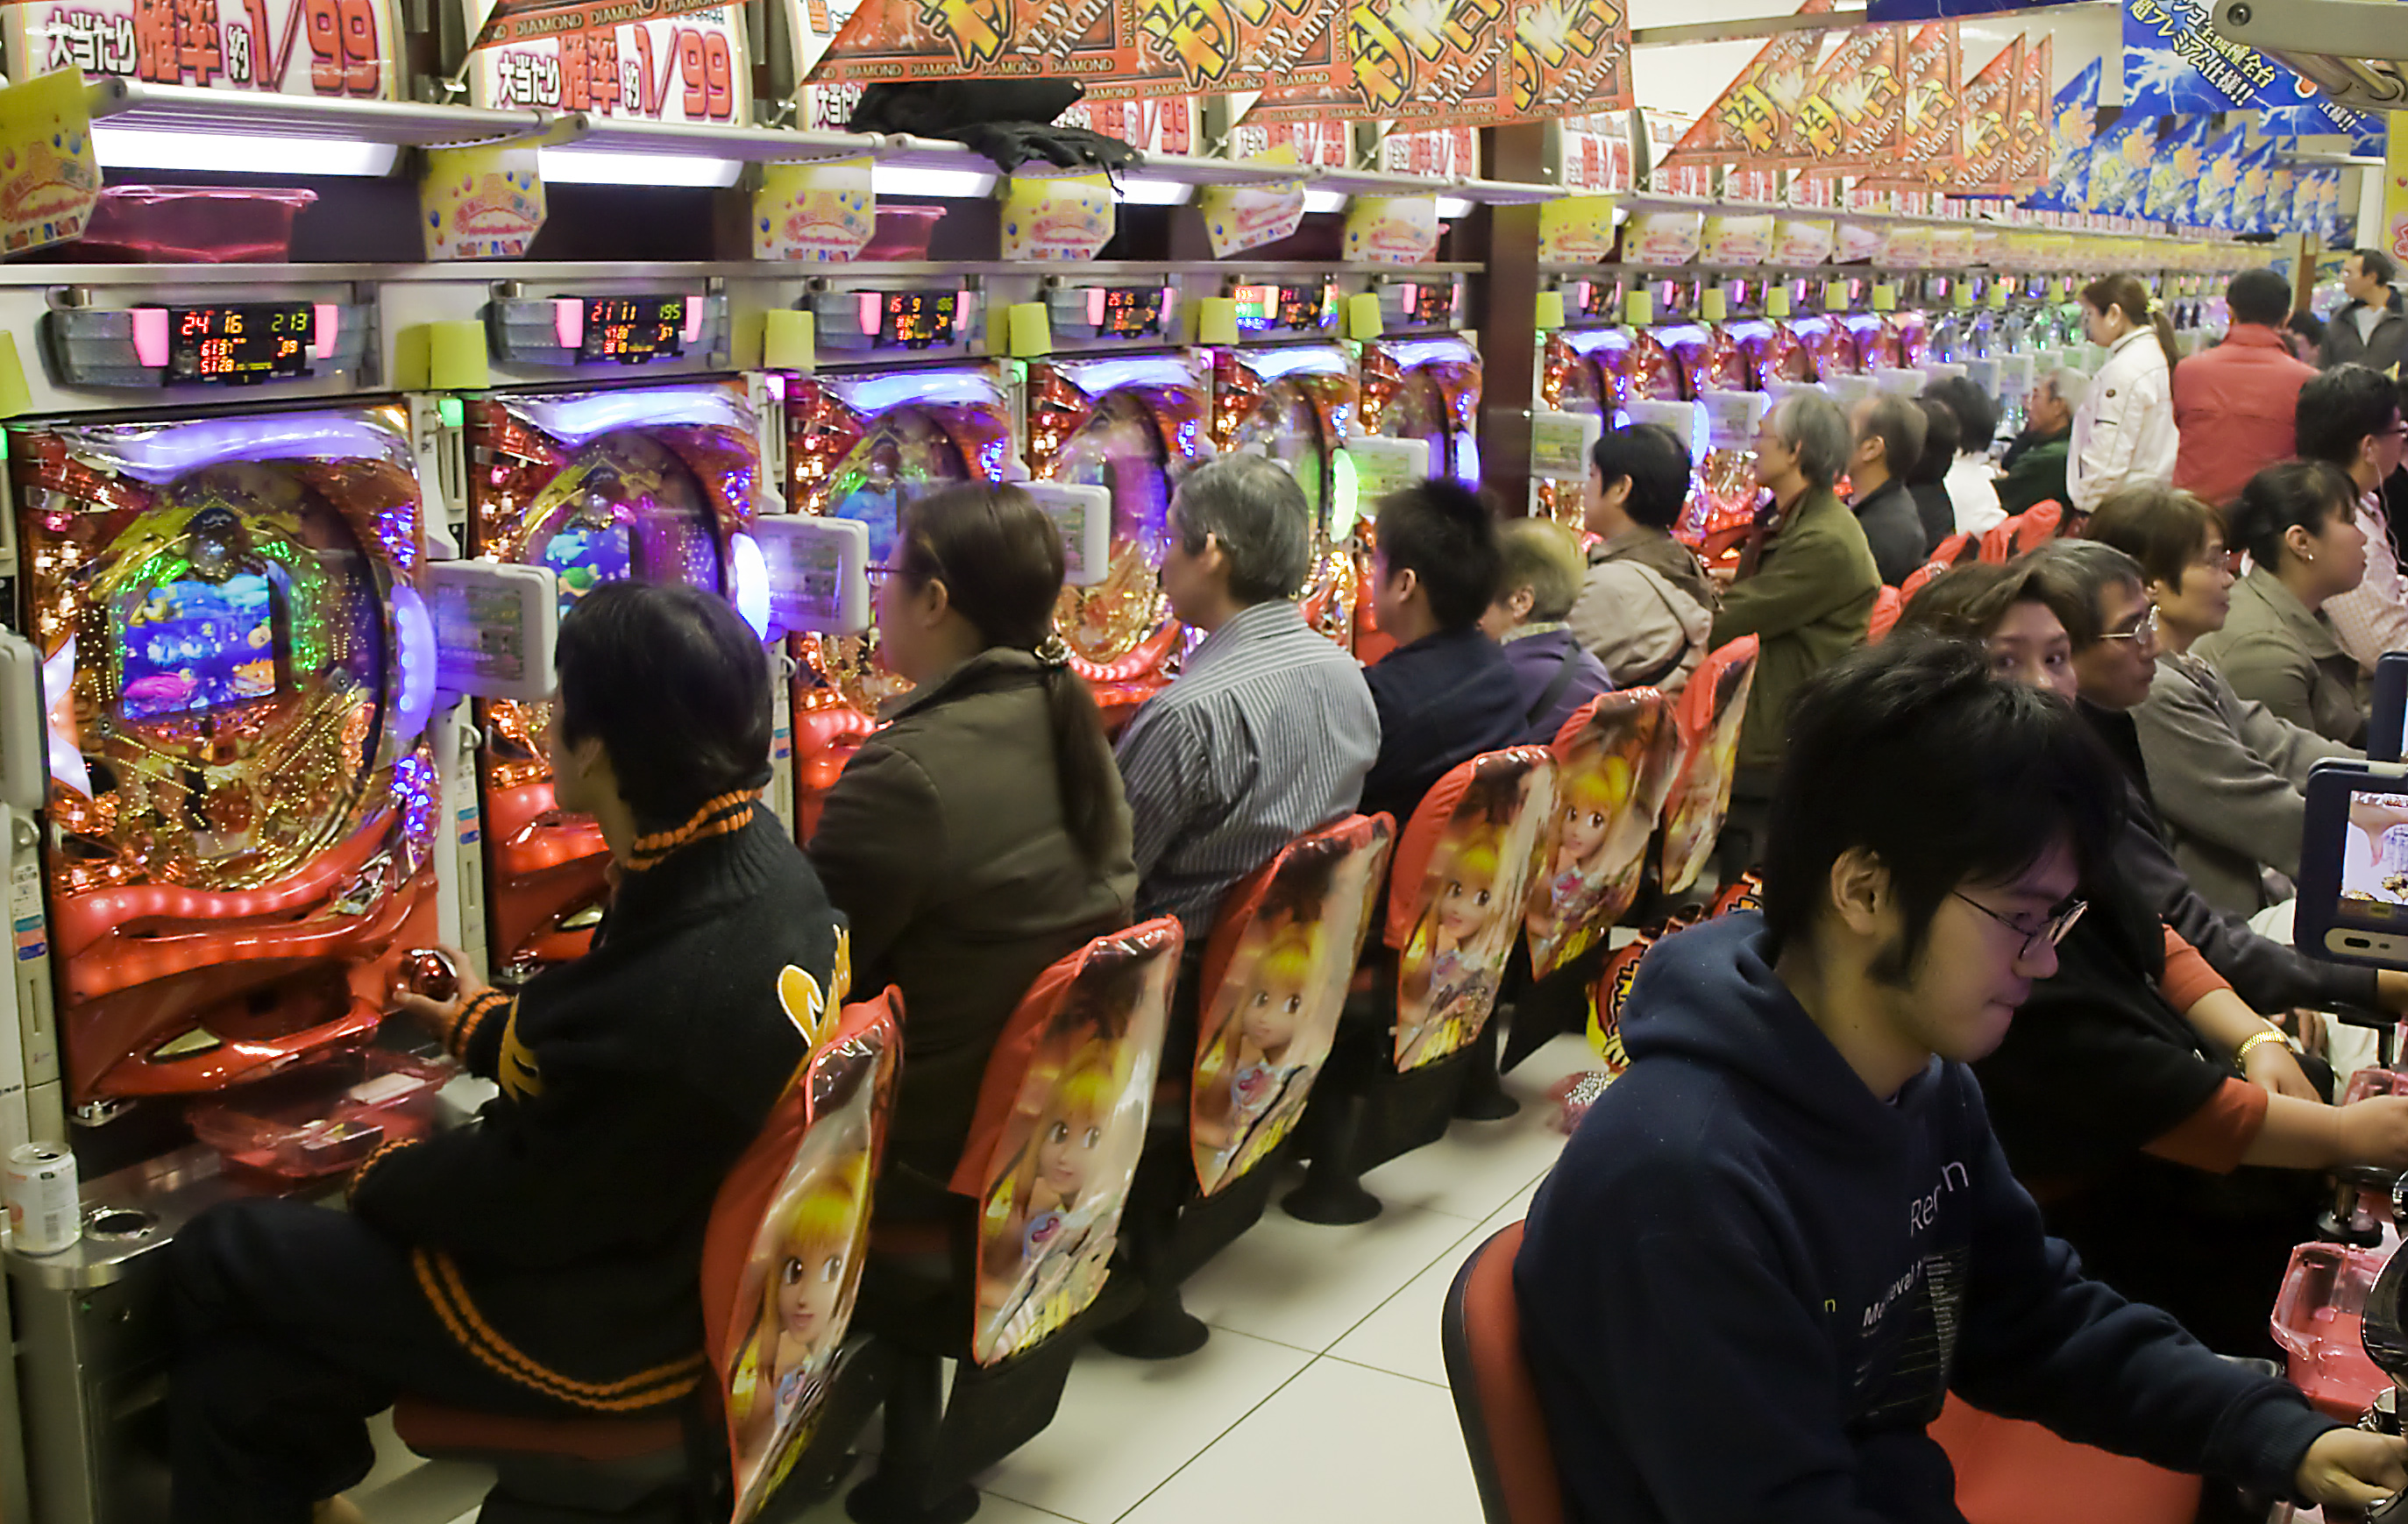 https://i1.wp.com/upload.wikimedia.org/wikipedia/commons/8/8b/Pachinko_parlour.jpg